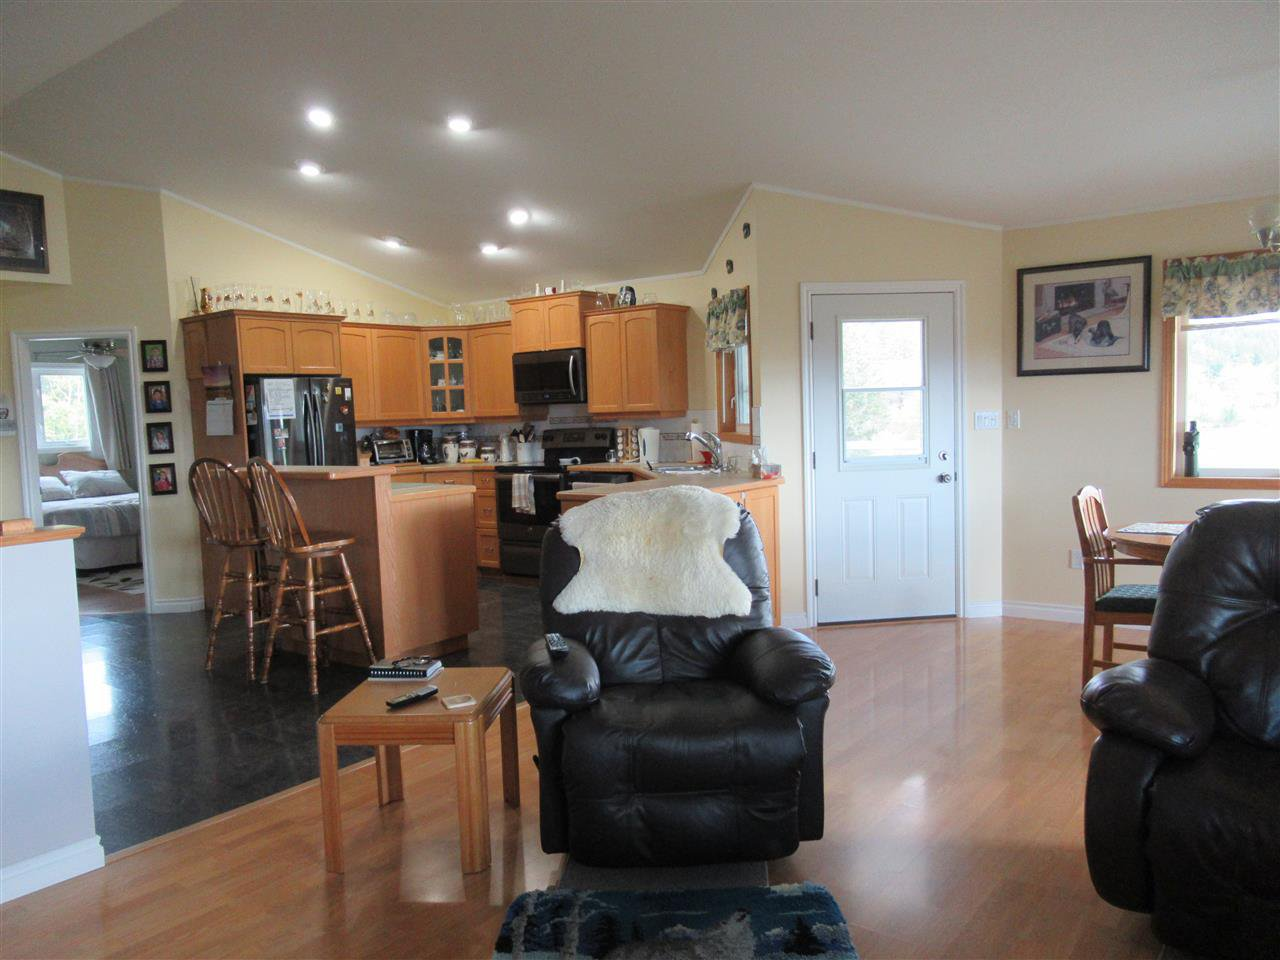 Photo 6: Photos: 2884 GOLD DIGGER Drive: 150 Mile House House for sale (Williams Lake (Zone 27))  : MLS®# R2409553